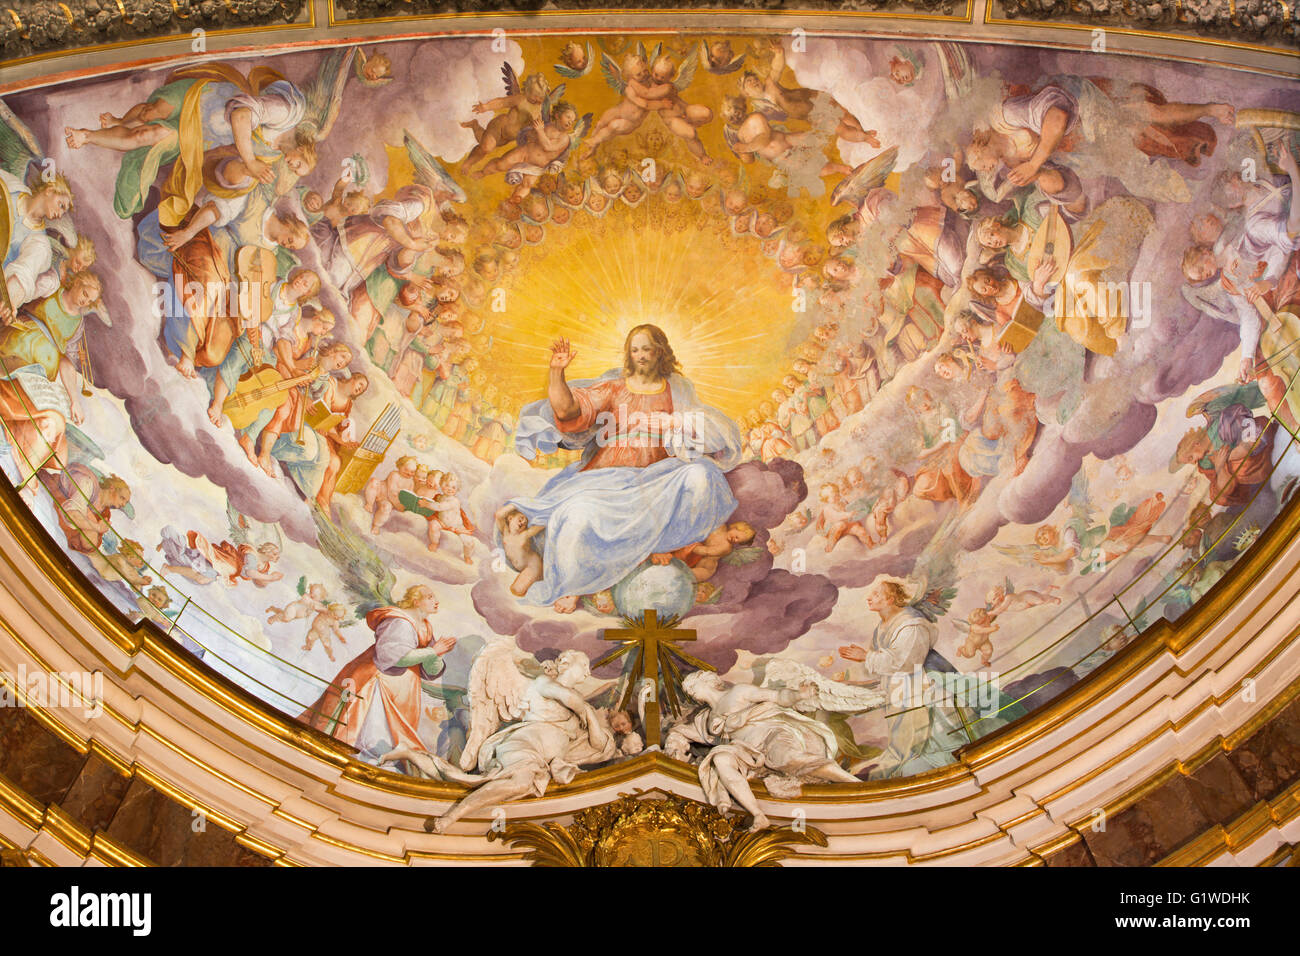 ROME, ITALY - MARCH, 2016: The fresco of Christ the Redeemer in Glory with the Heavenly Host by Niccolo Circignani - Stock Image